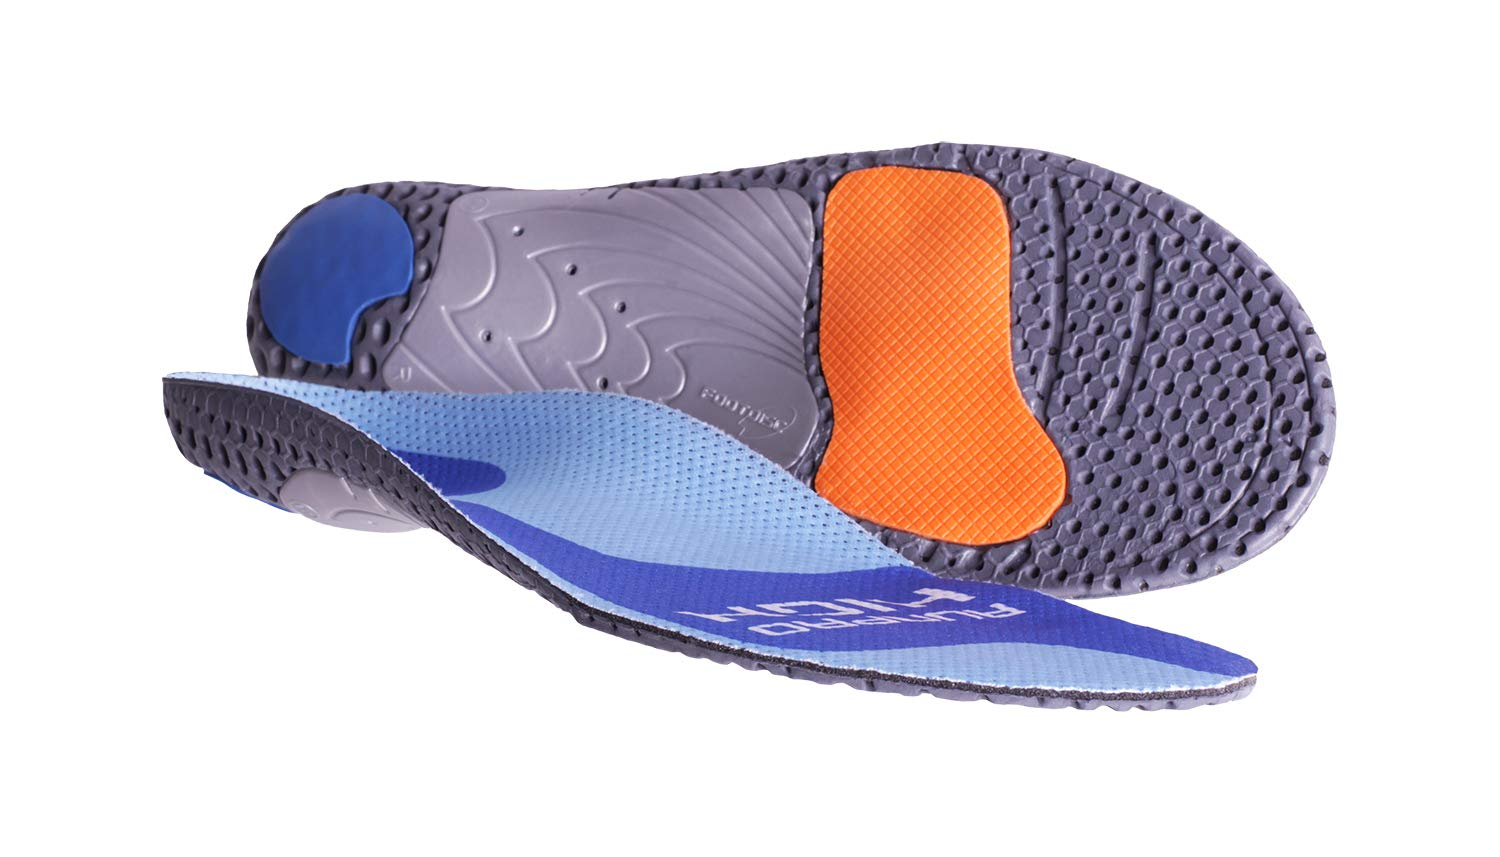 Currexsole Runpro Insoles - High Arch Wal Size: M: Women's 8-9.5 / Men's 6.5-8 by currexSole